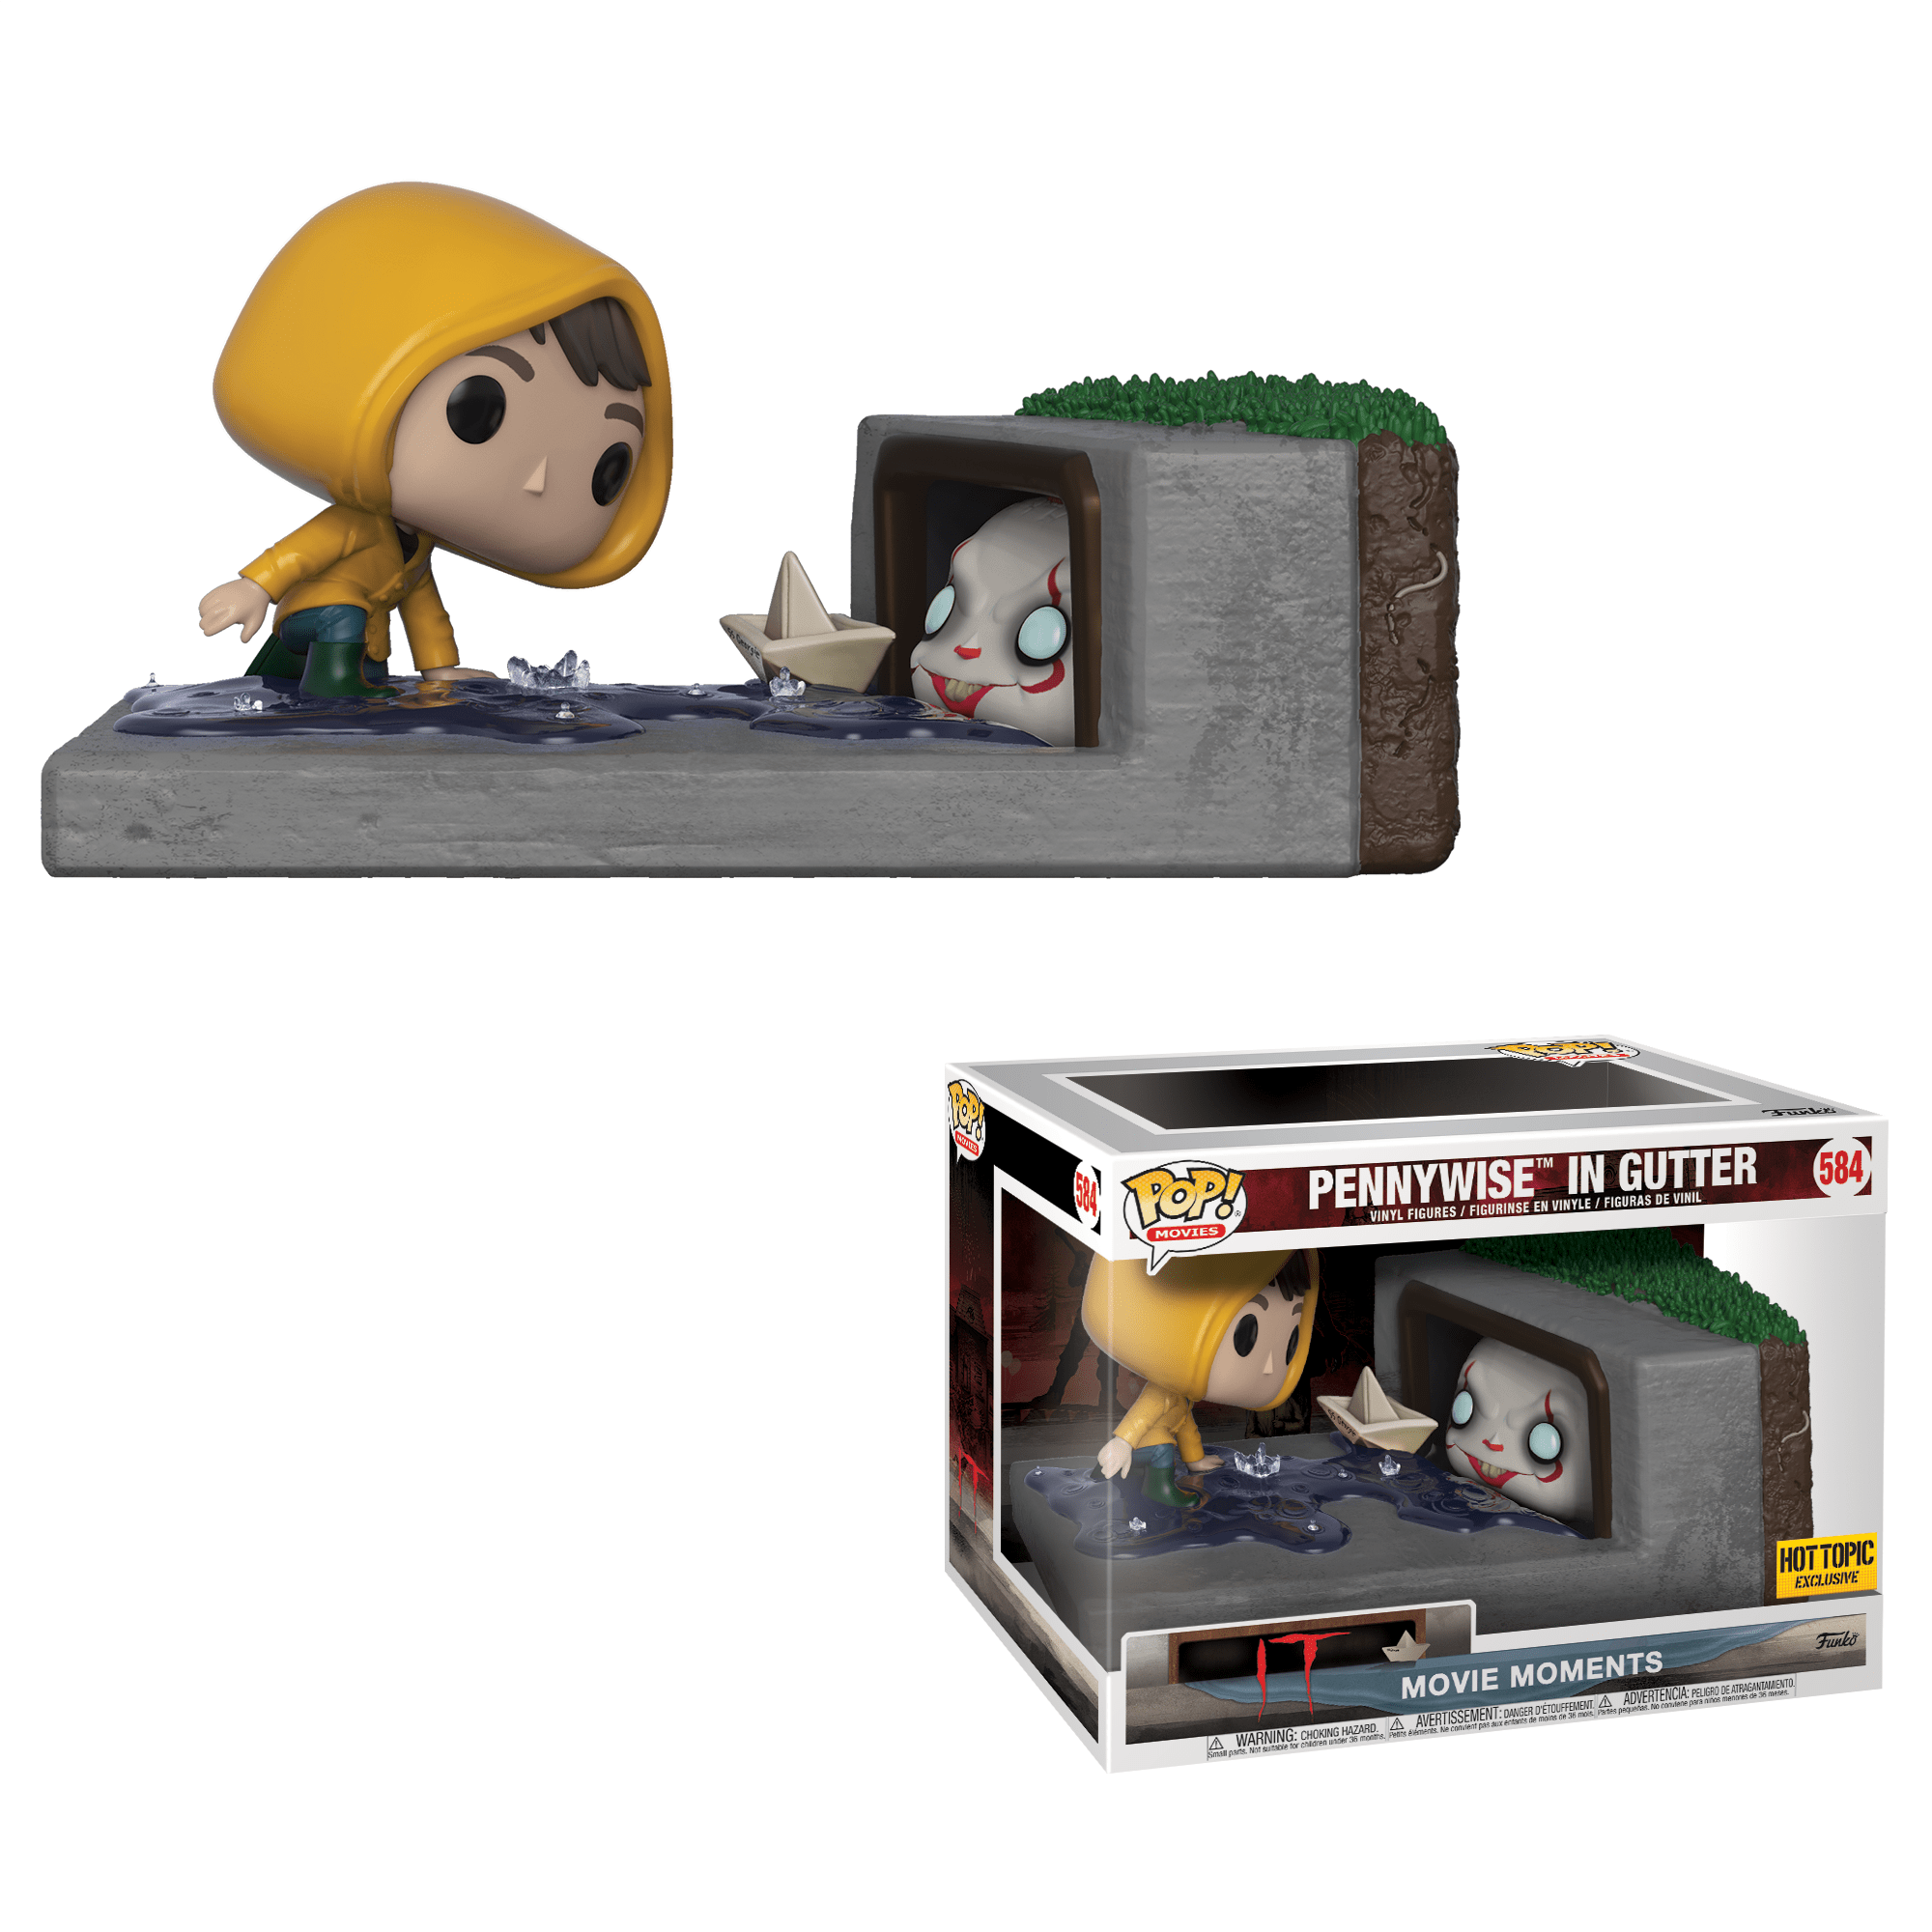 Pennywise Catalog Funko Everyone is a fan of